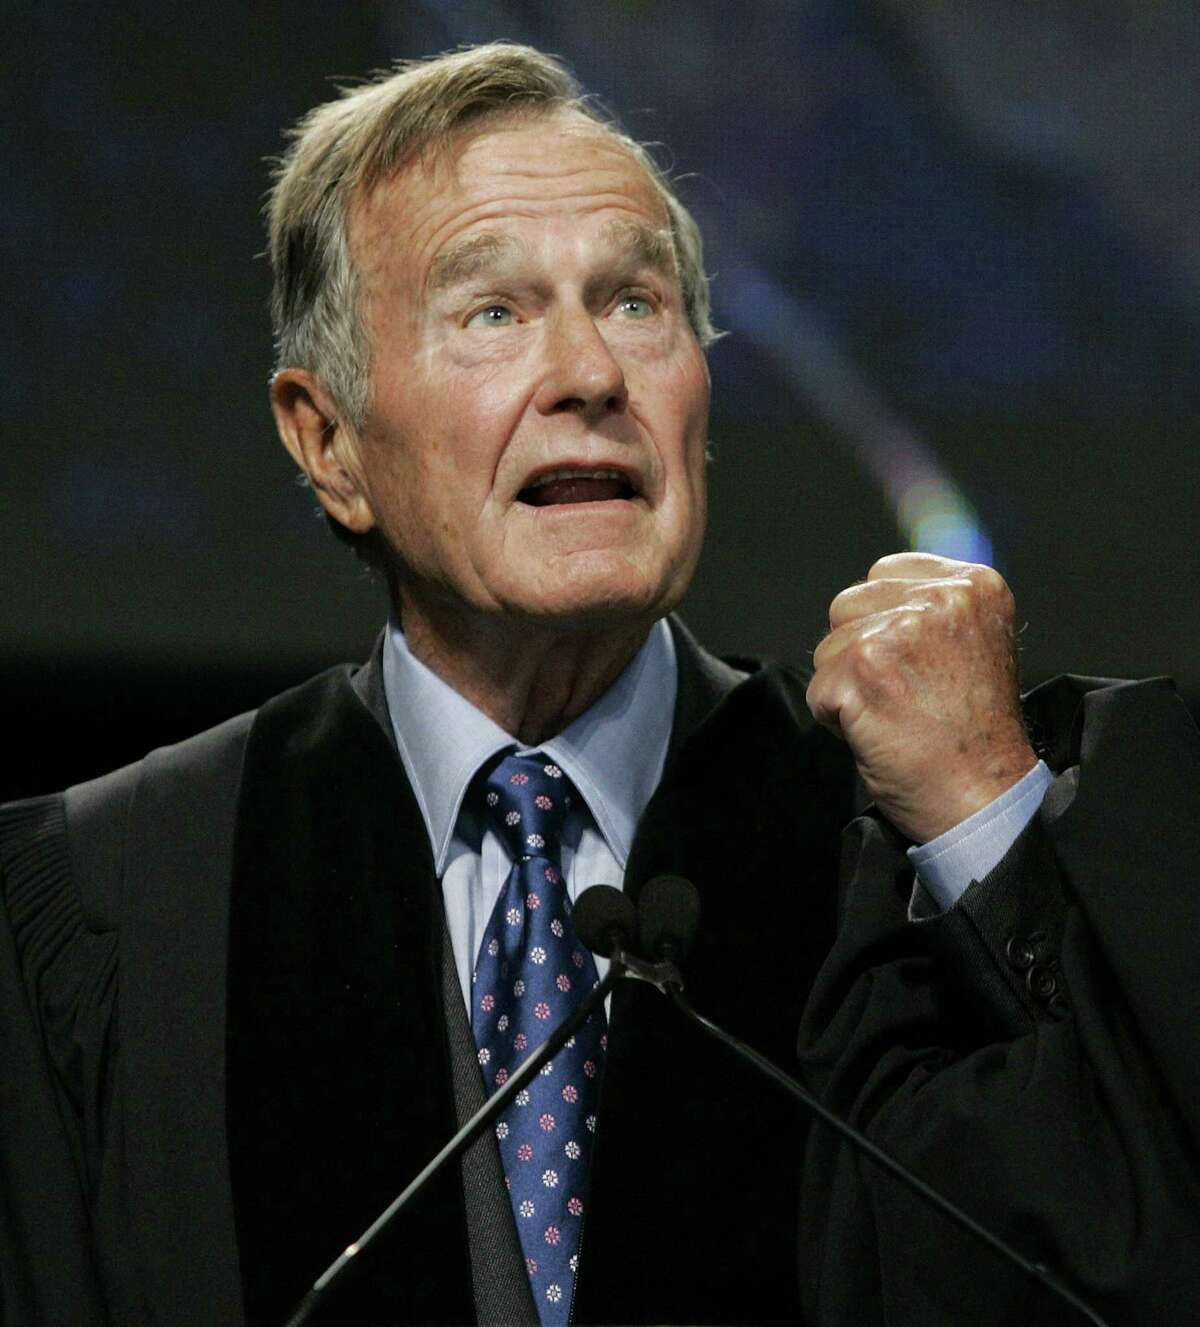 In this Sept. 21, 2006 file photo, former President George H.W. Bush delivers the keynote speech before receiving an honorary Doctor of Public Administration degree at Suffolk University in Boston. (AP Photo/Elise Amendola, Pool, File)